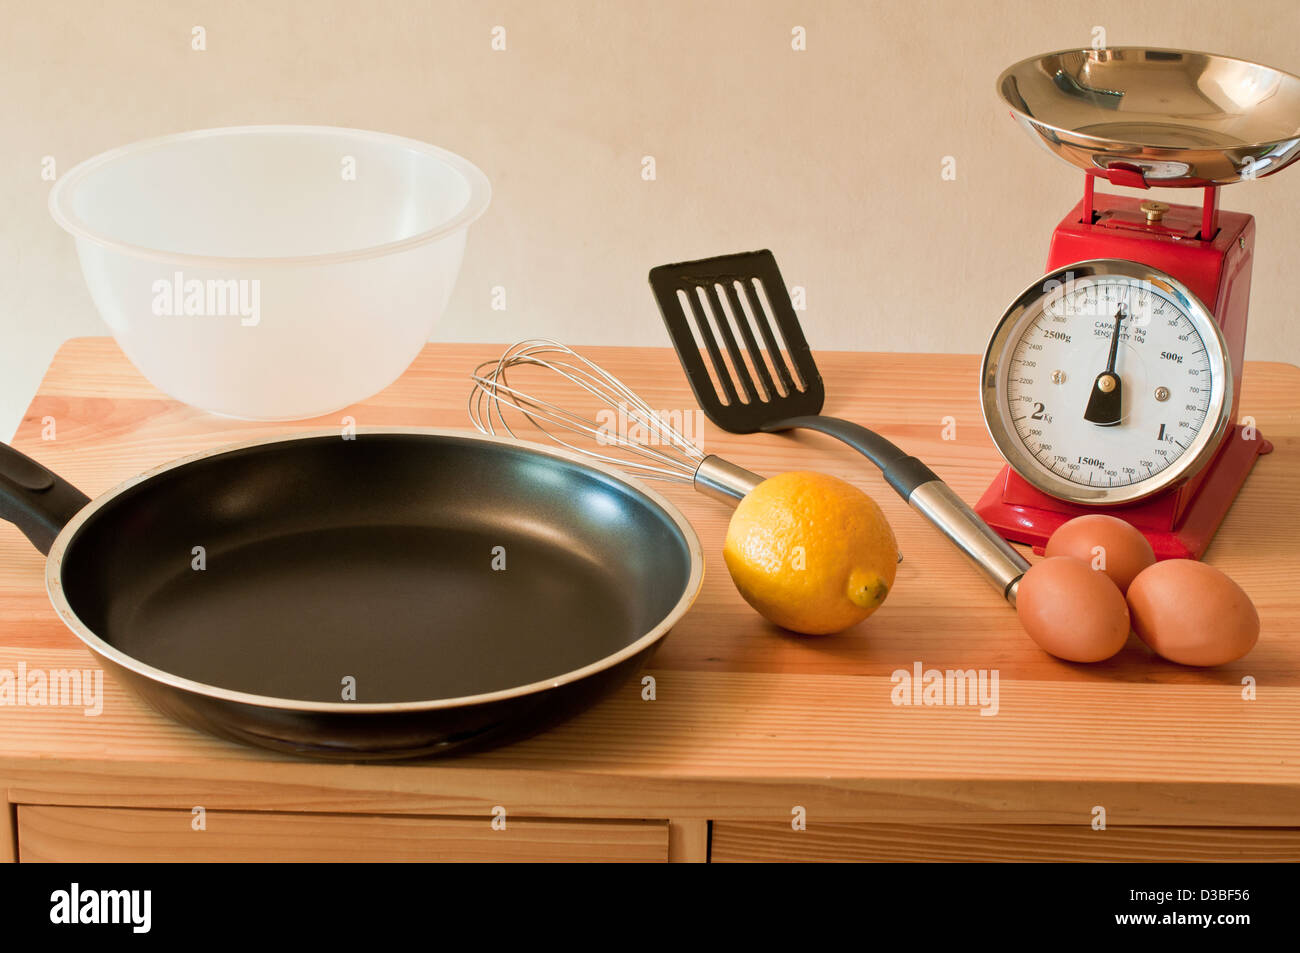 Baking and cooking - Stock Image